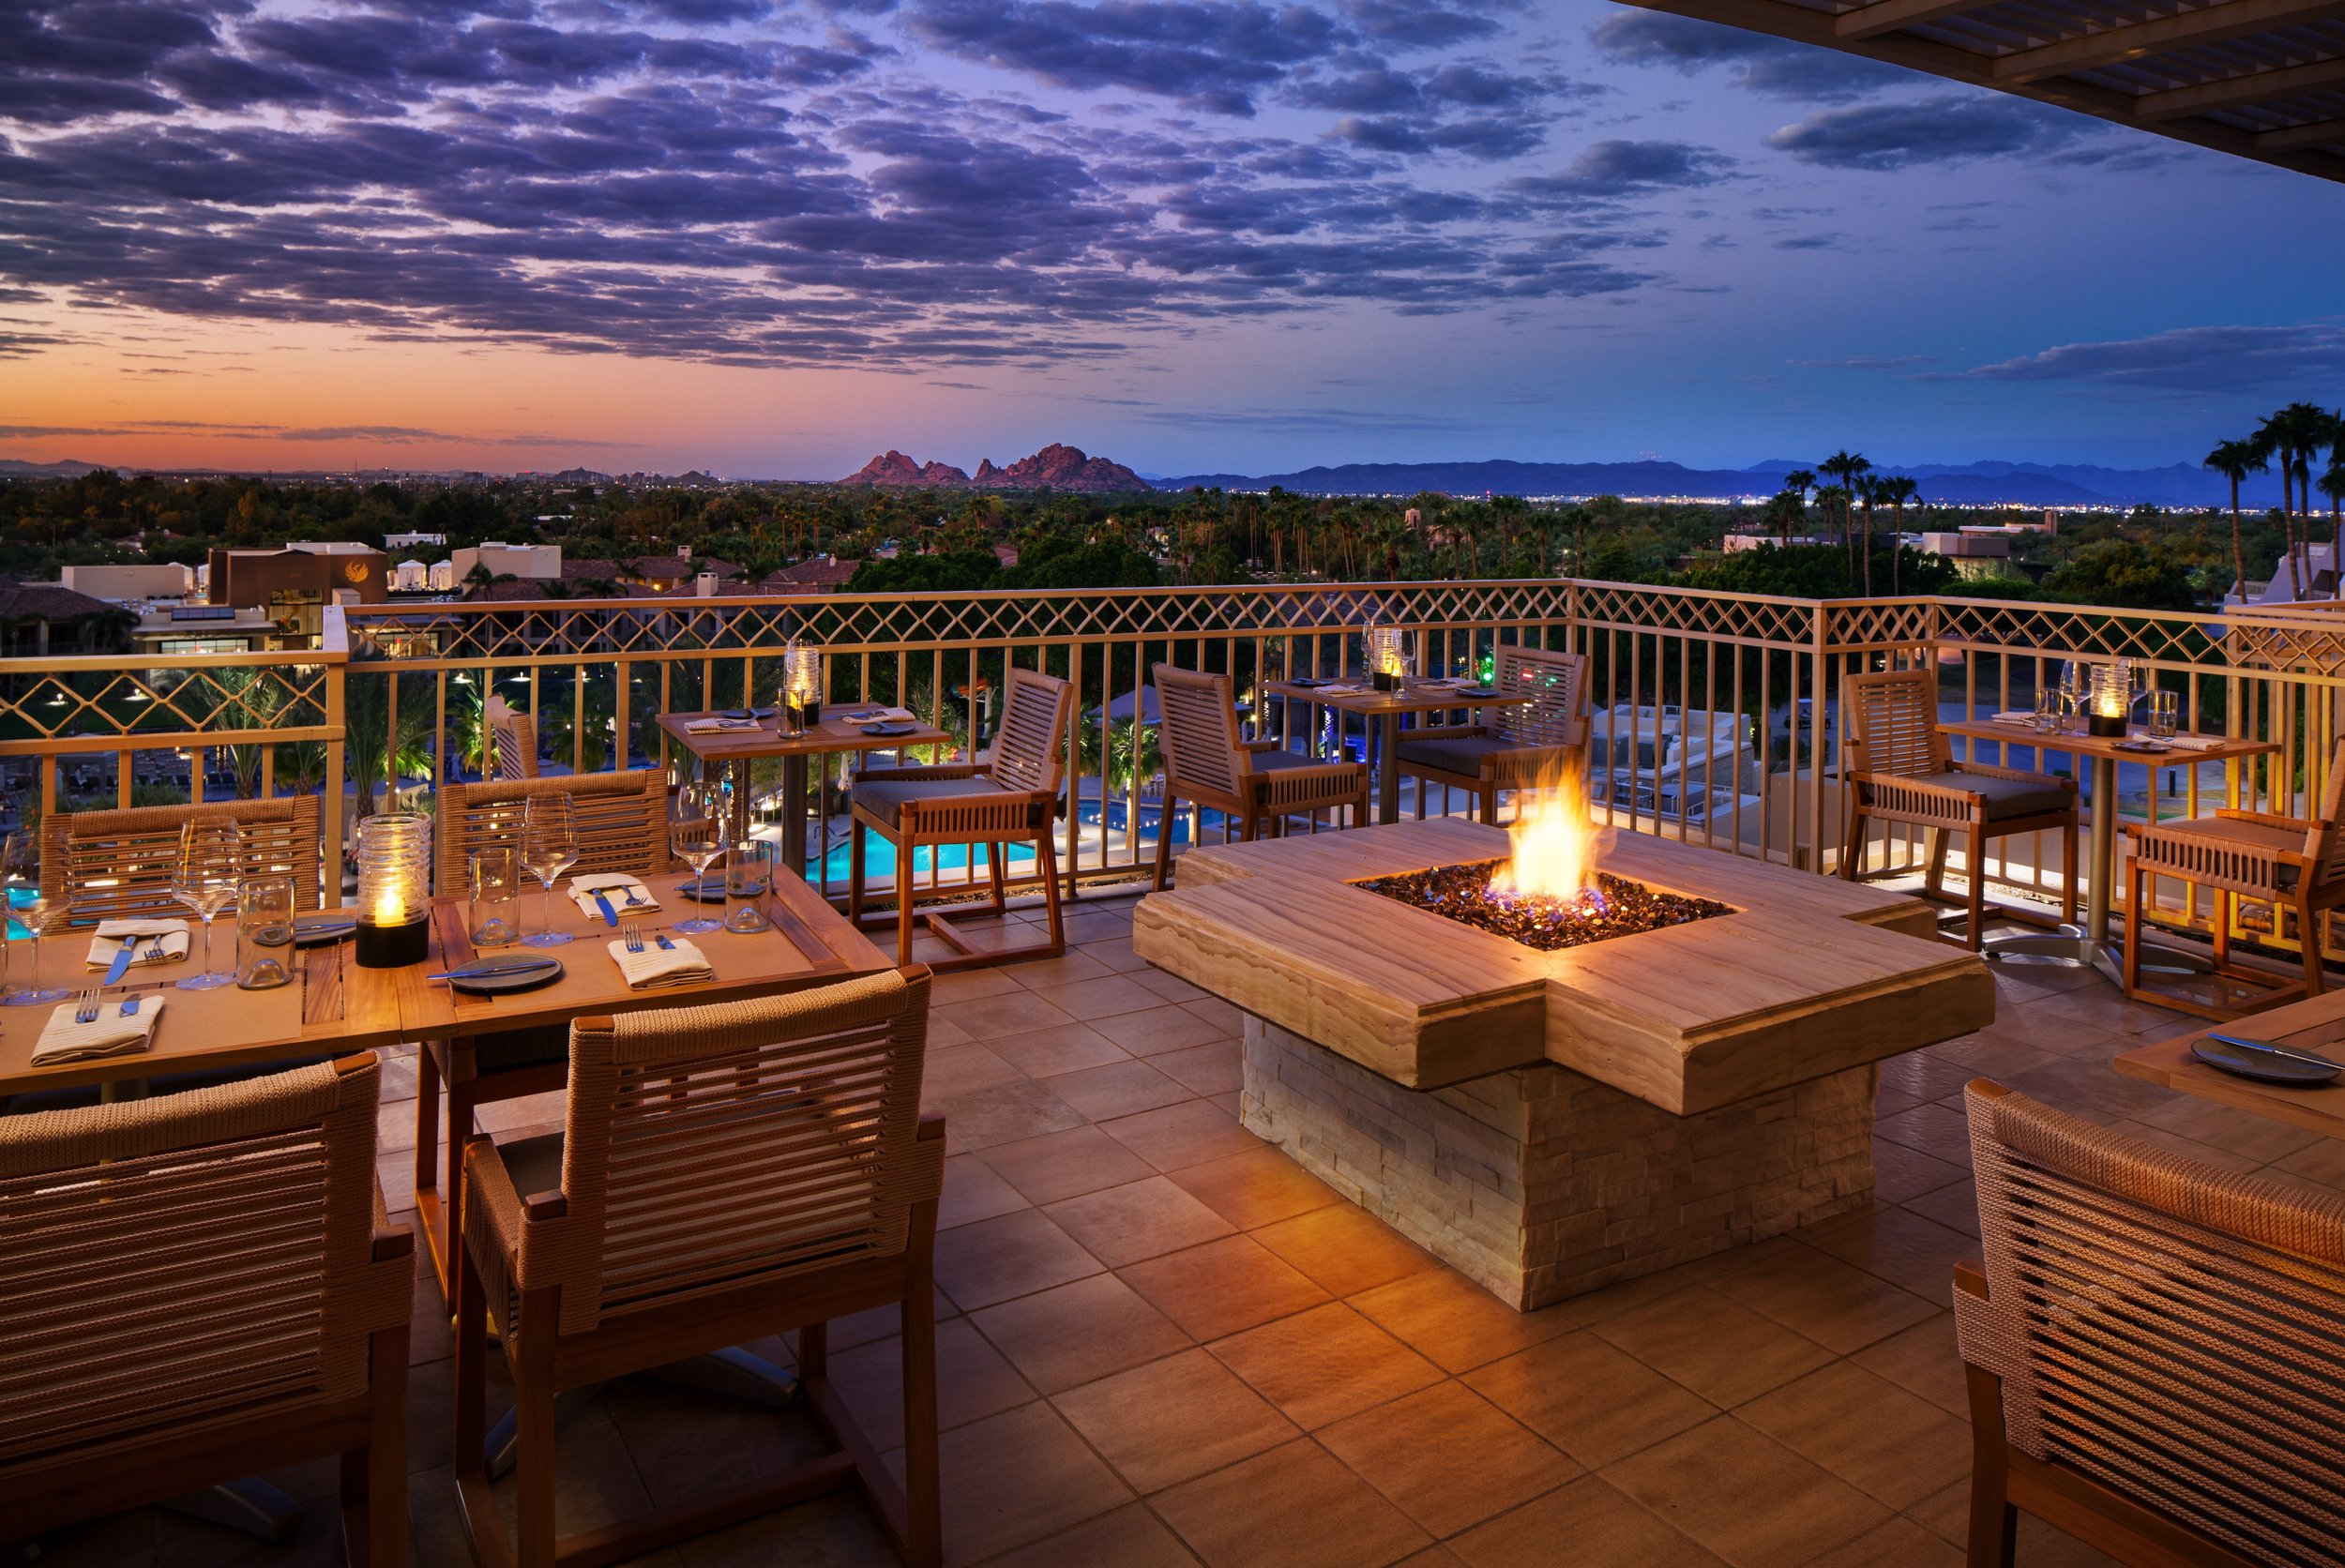 Patio   Soak in Scottsdale's nearly 330 days of annual sunshine on our stylishly refreshed outdoor dining deck.